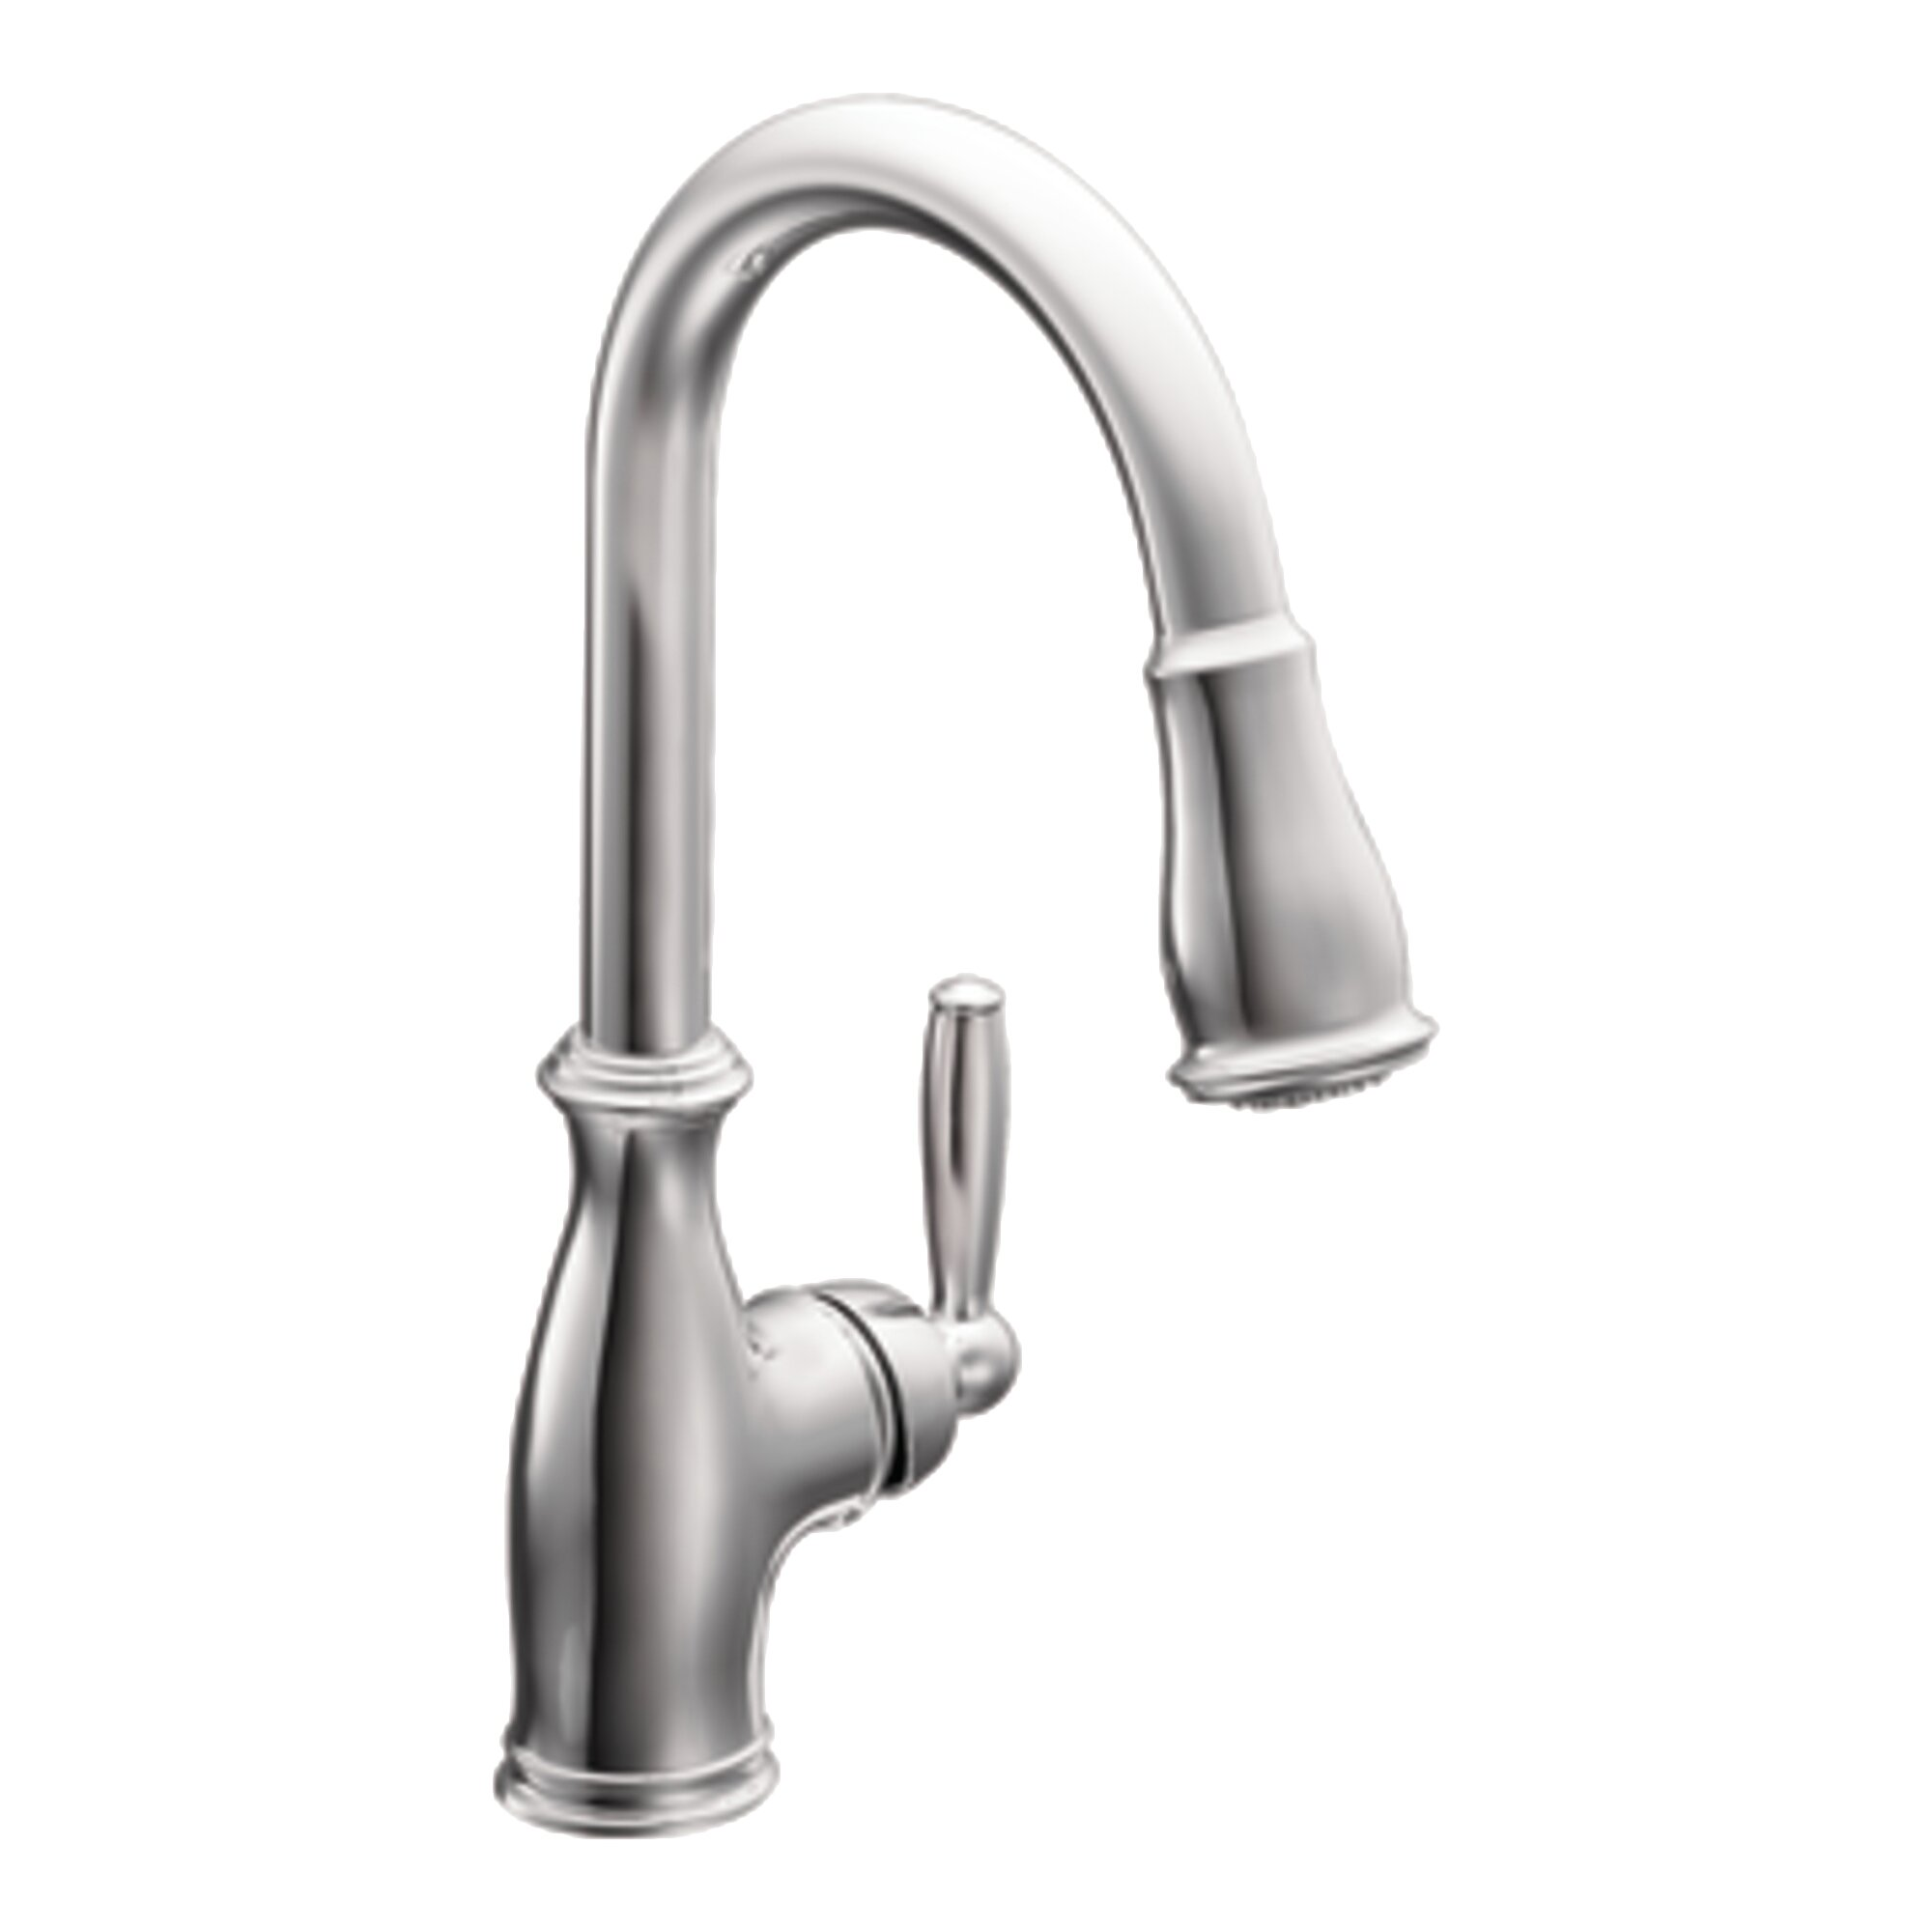 moen brantford single handle kitchen faucet reviews